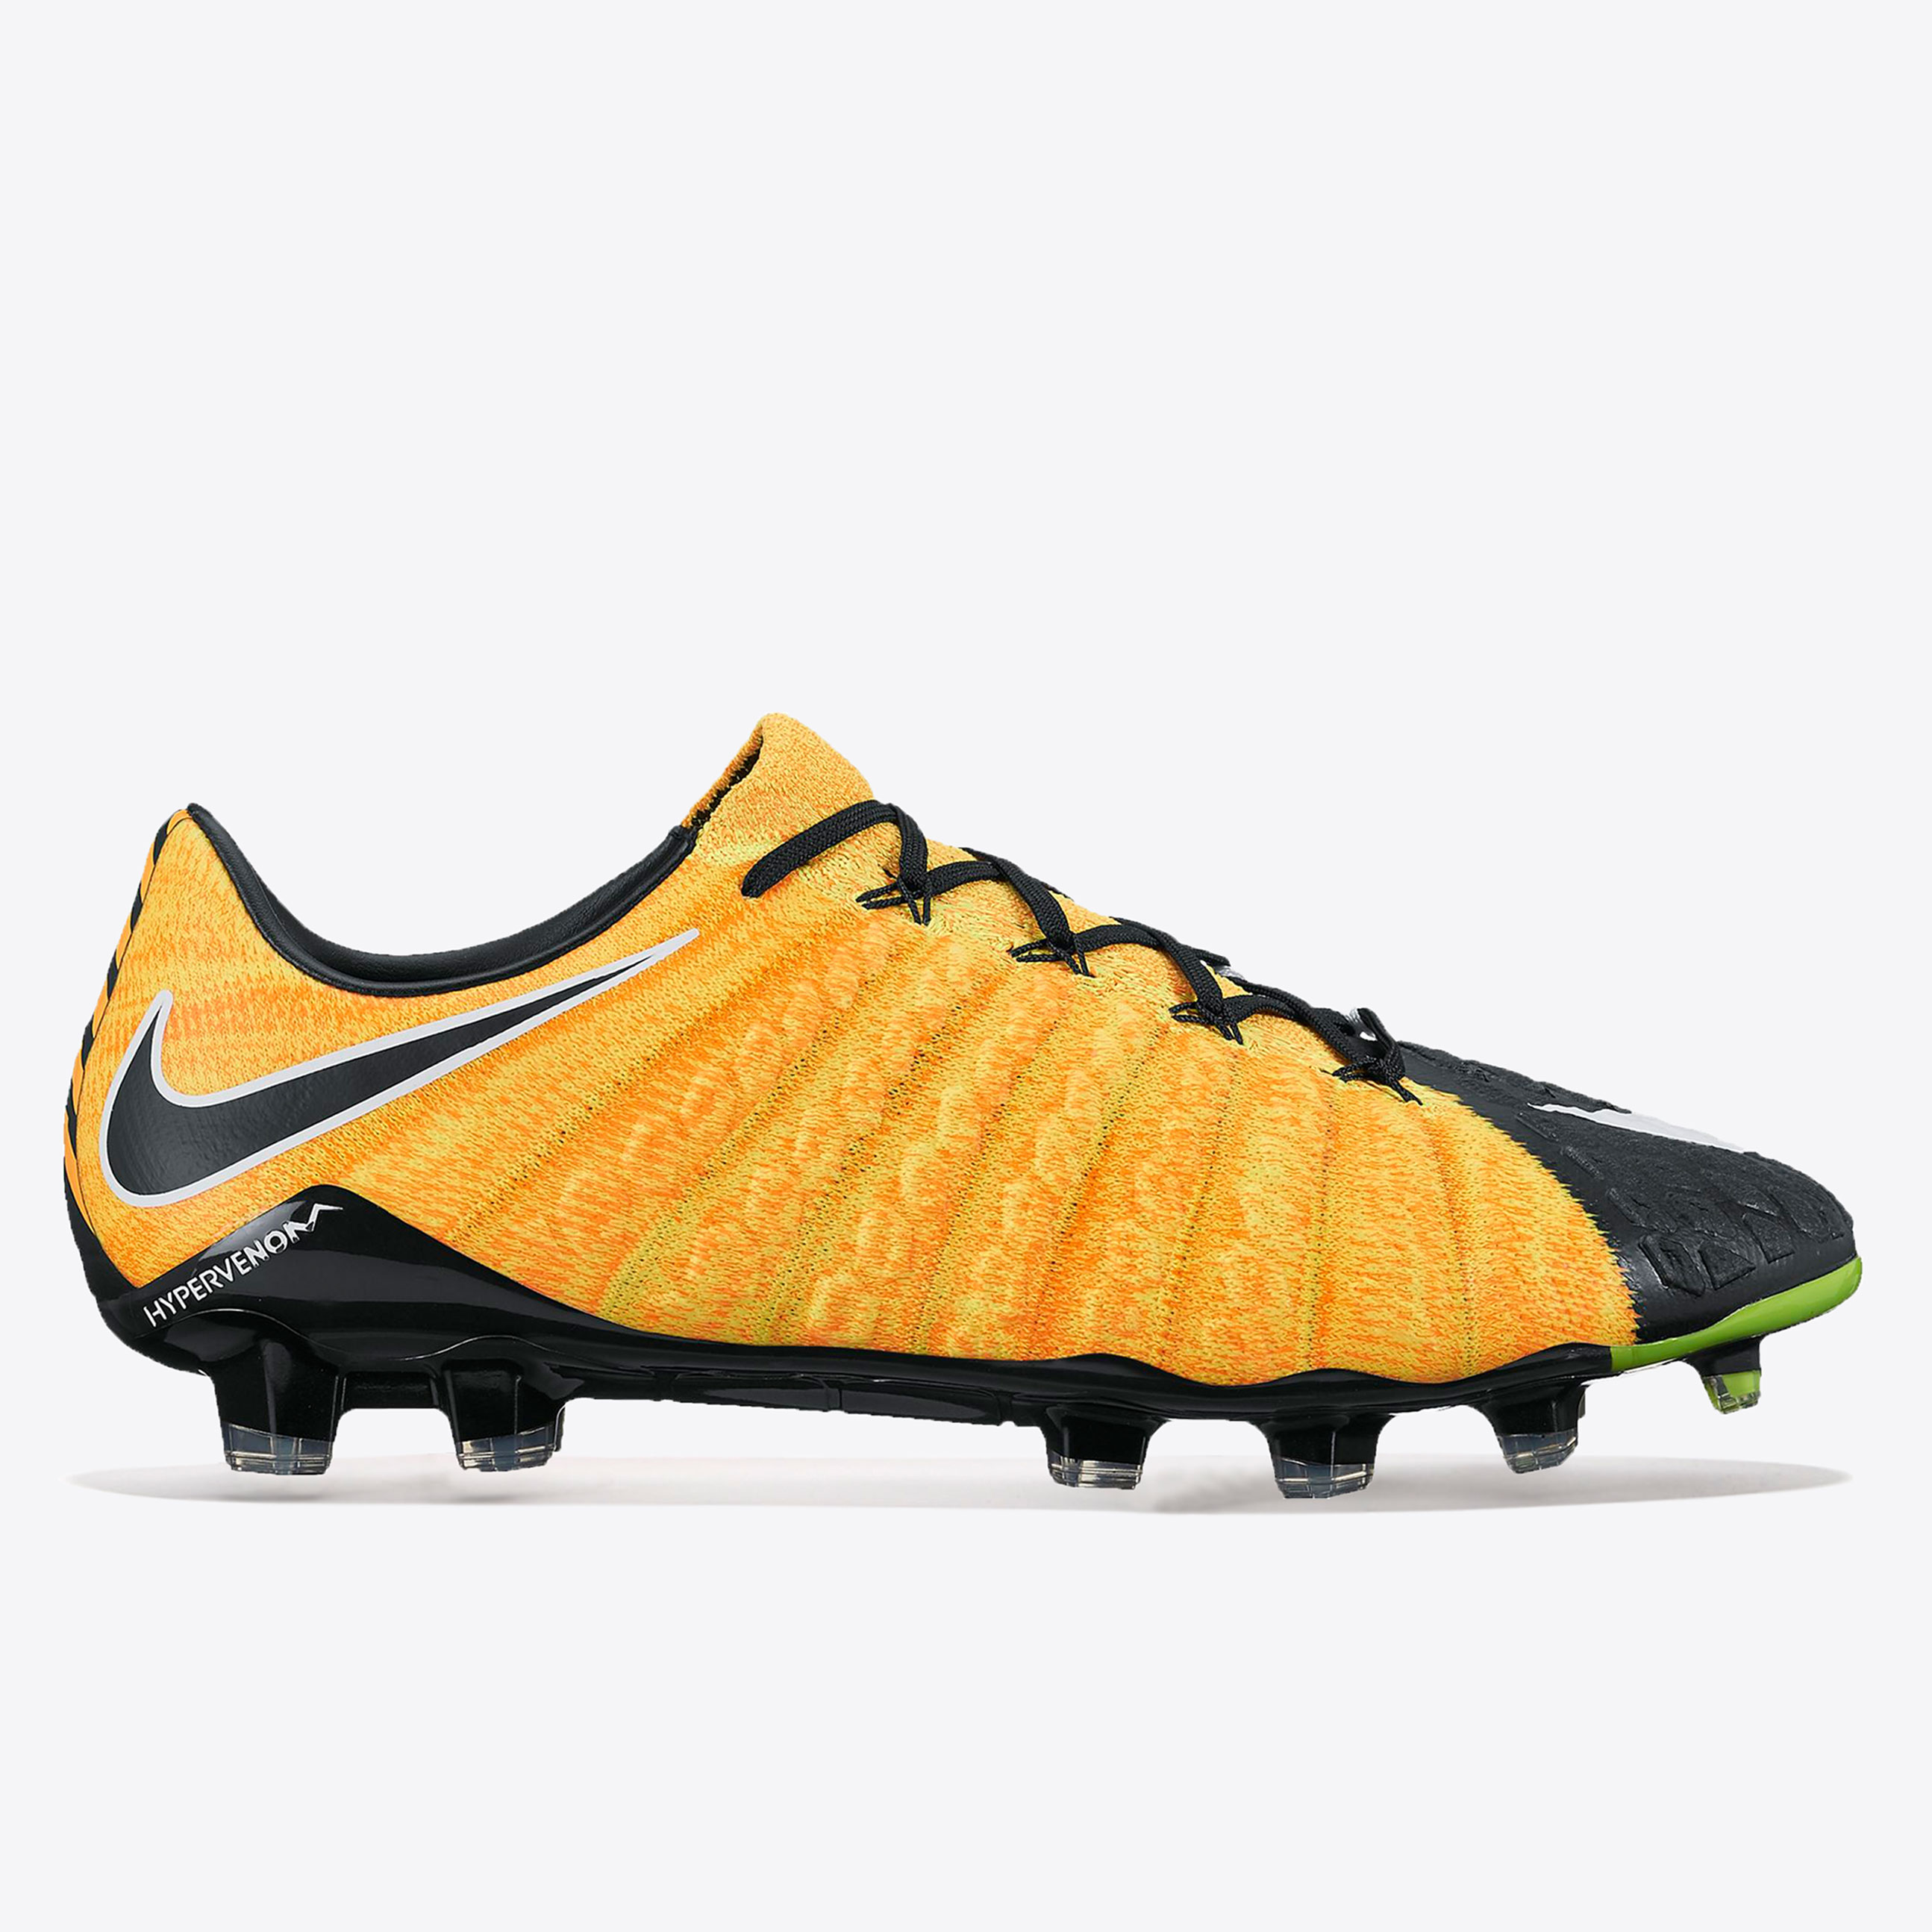 Nike Hypervenom Phantom III Firm Ground Football Boots - Laser Orange/